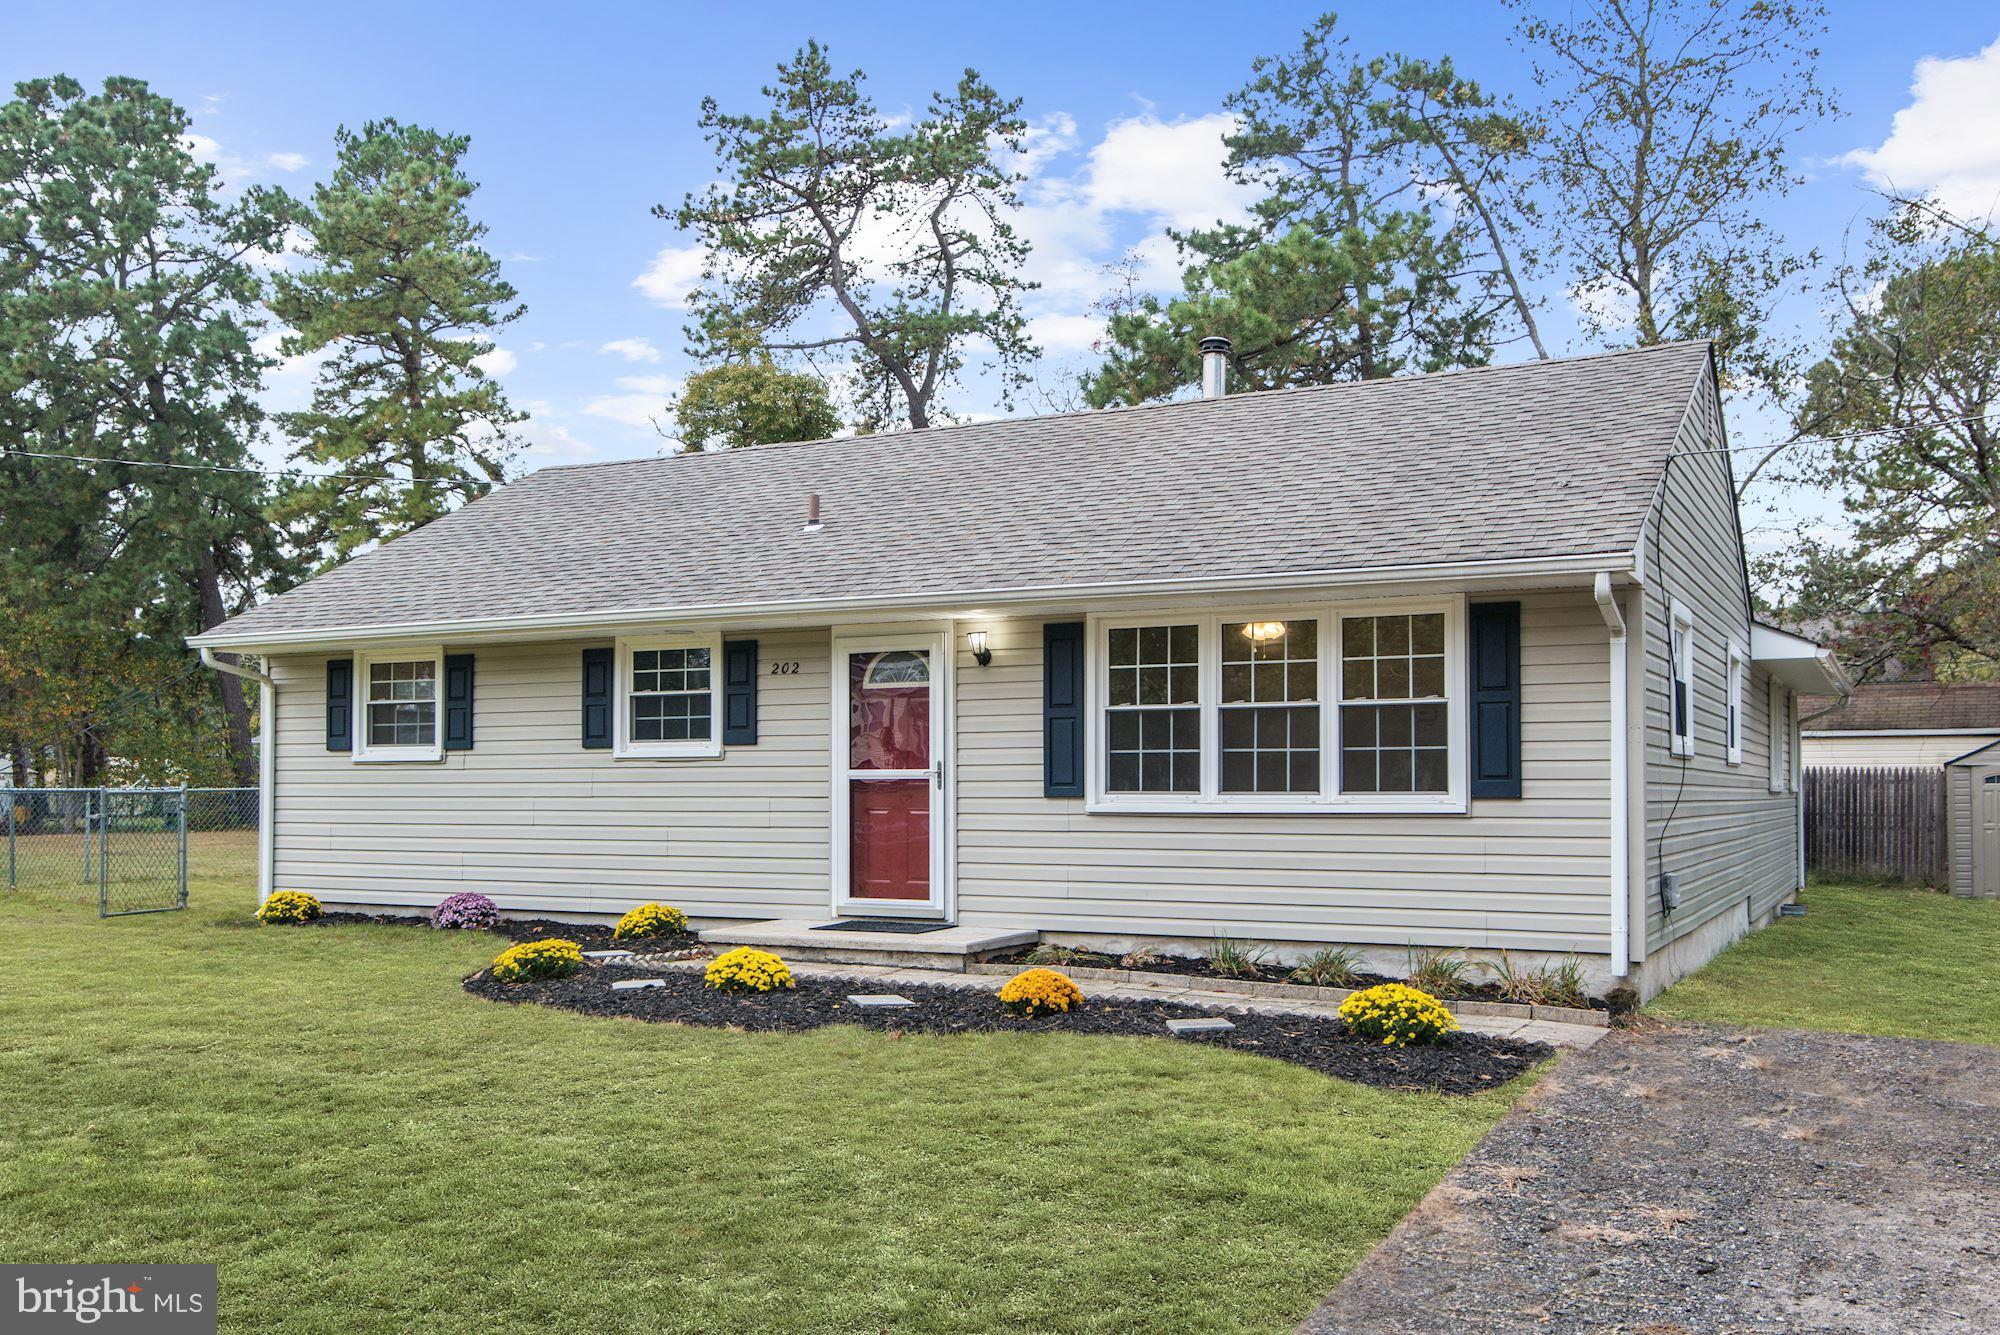 202 SHAWNEE TRAIL, BROWNS MILLS, NJ 08015